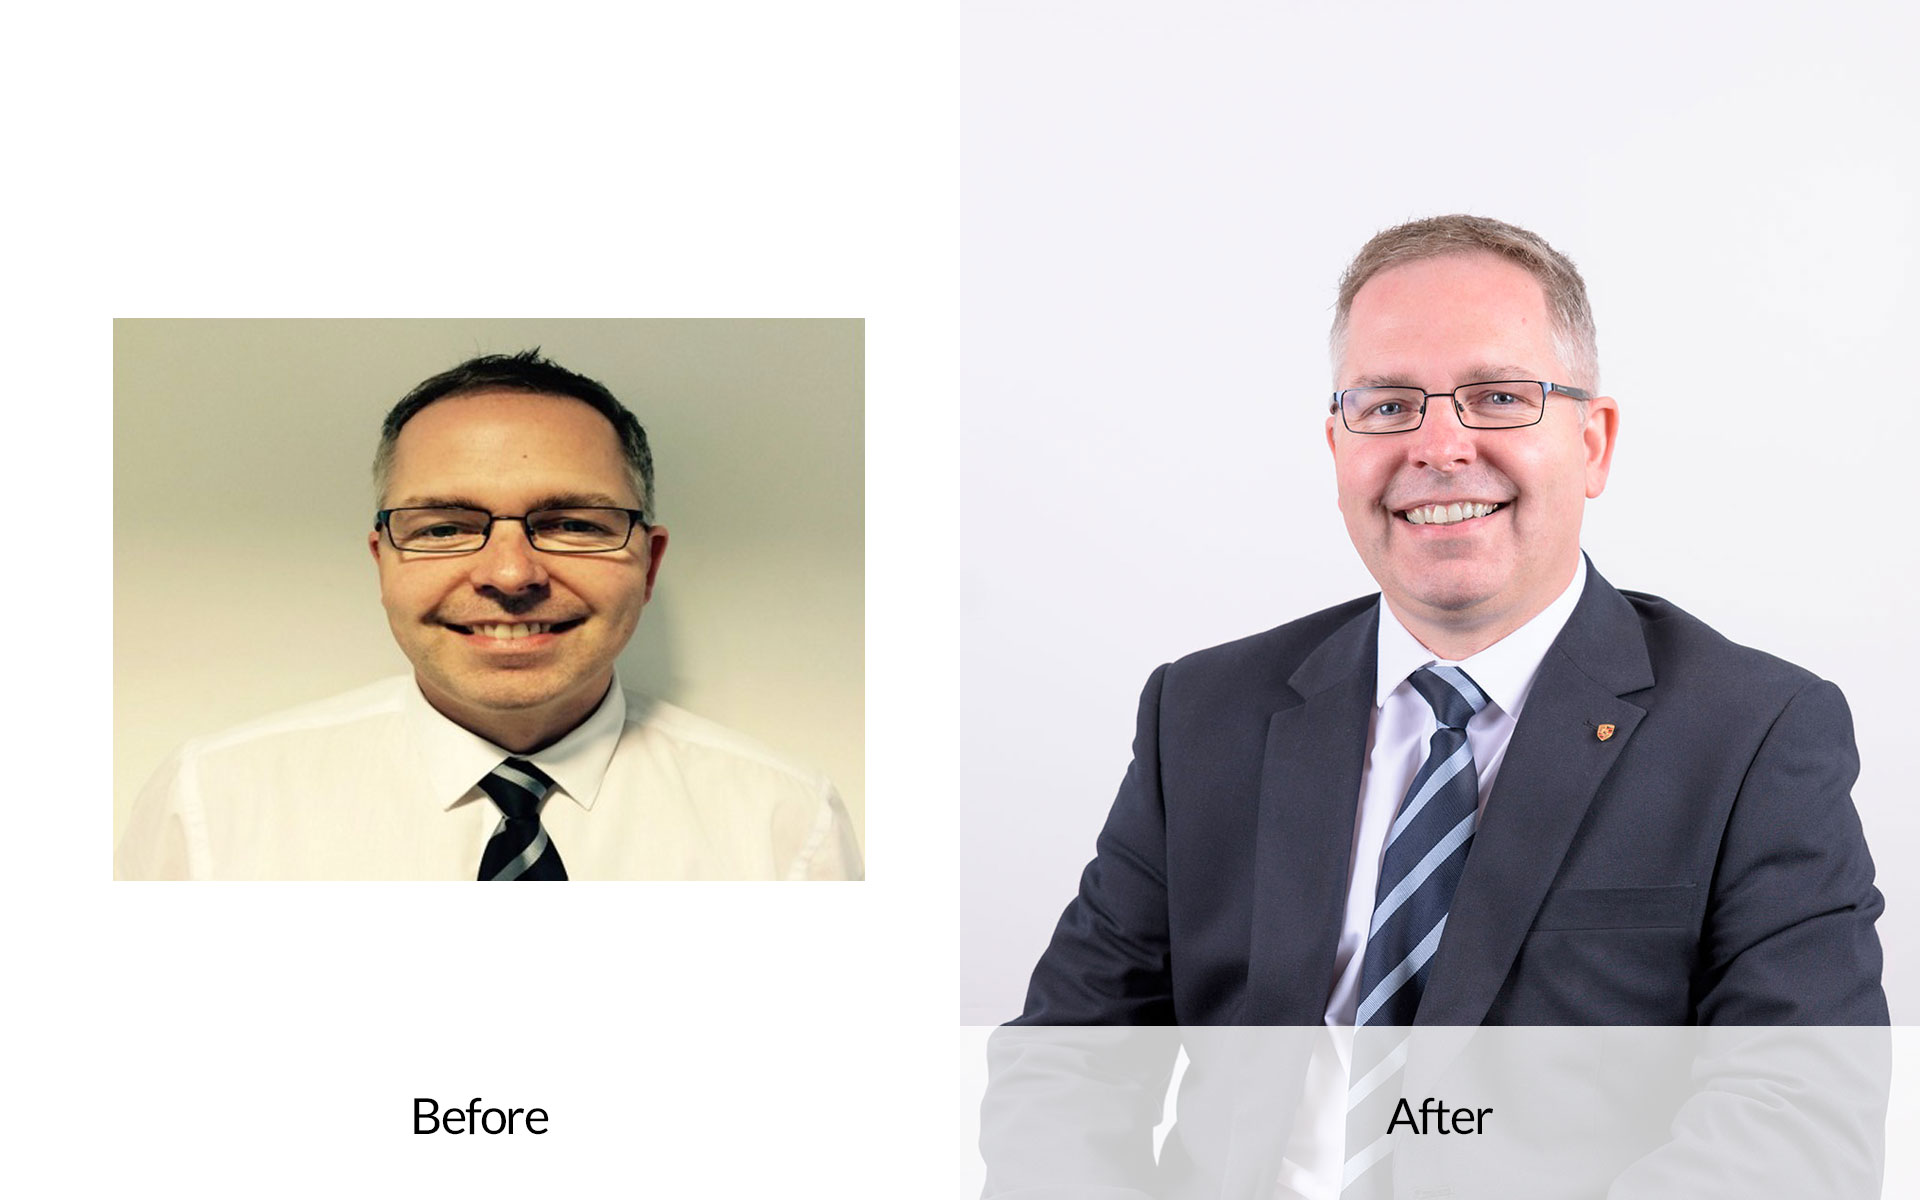 Before and After professional portrait photography sheffield rotherham doncaster chesterfield